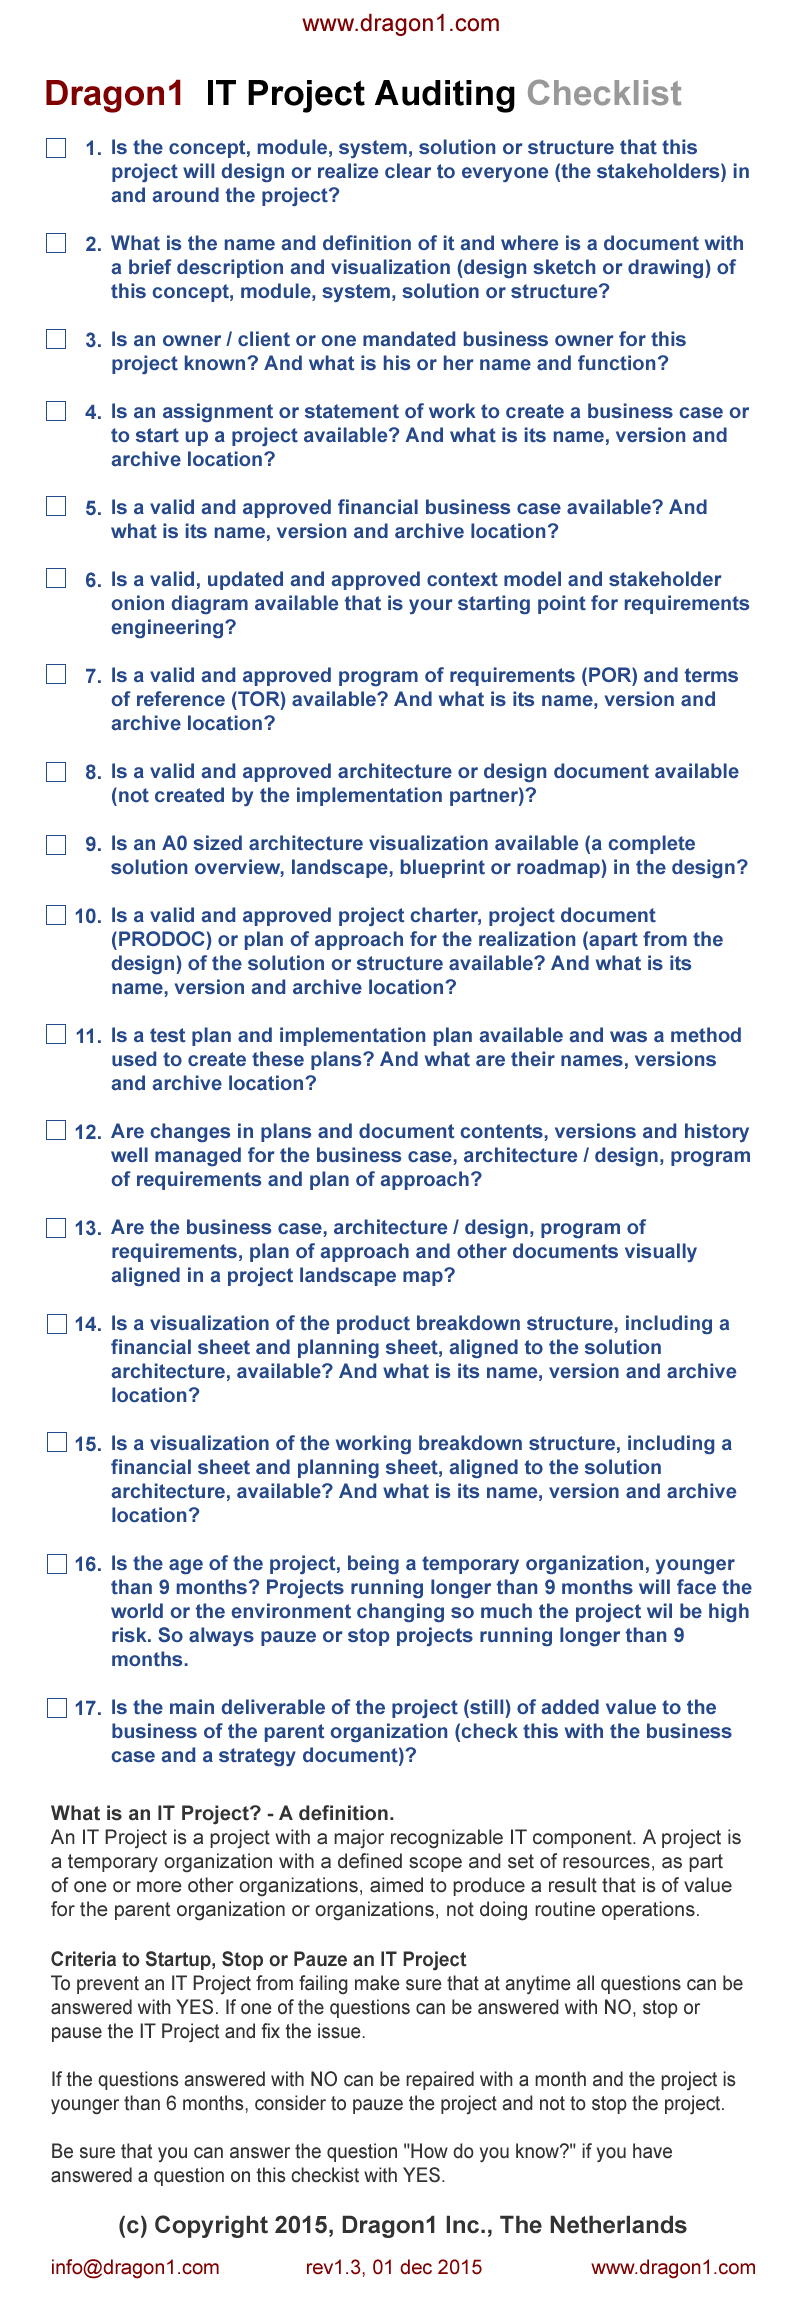 IT Project Auditing Checklist